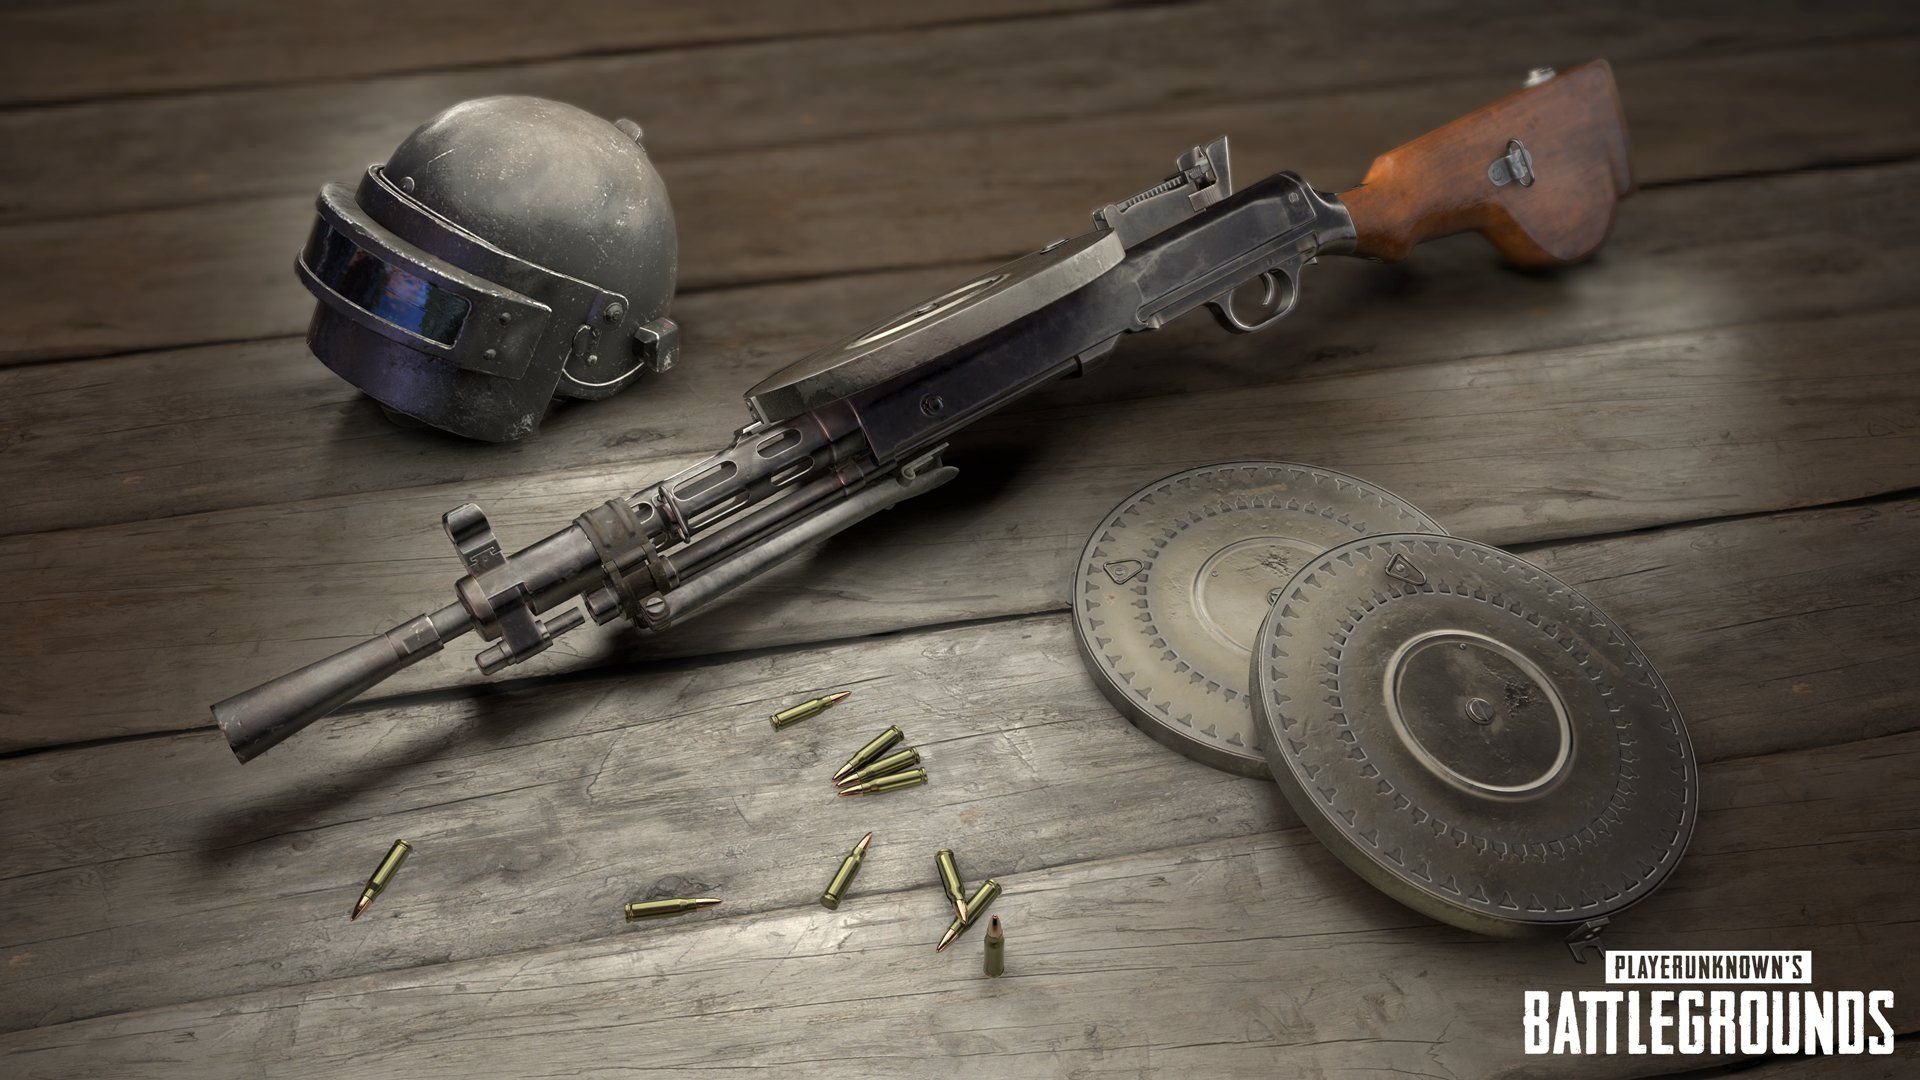 PlayerUnknown's Battlegrounds Has Two New Weapons To Play With In The DP-26 And AUG A3